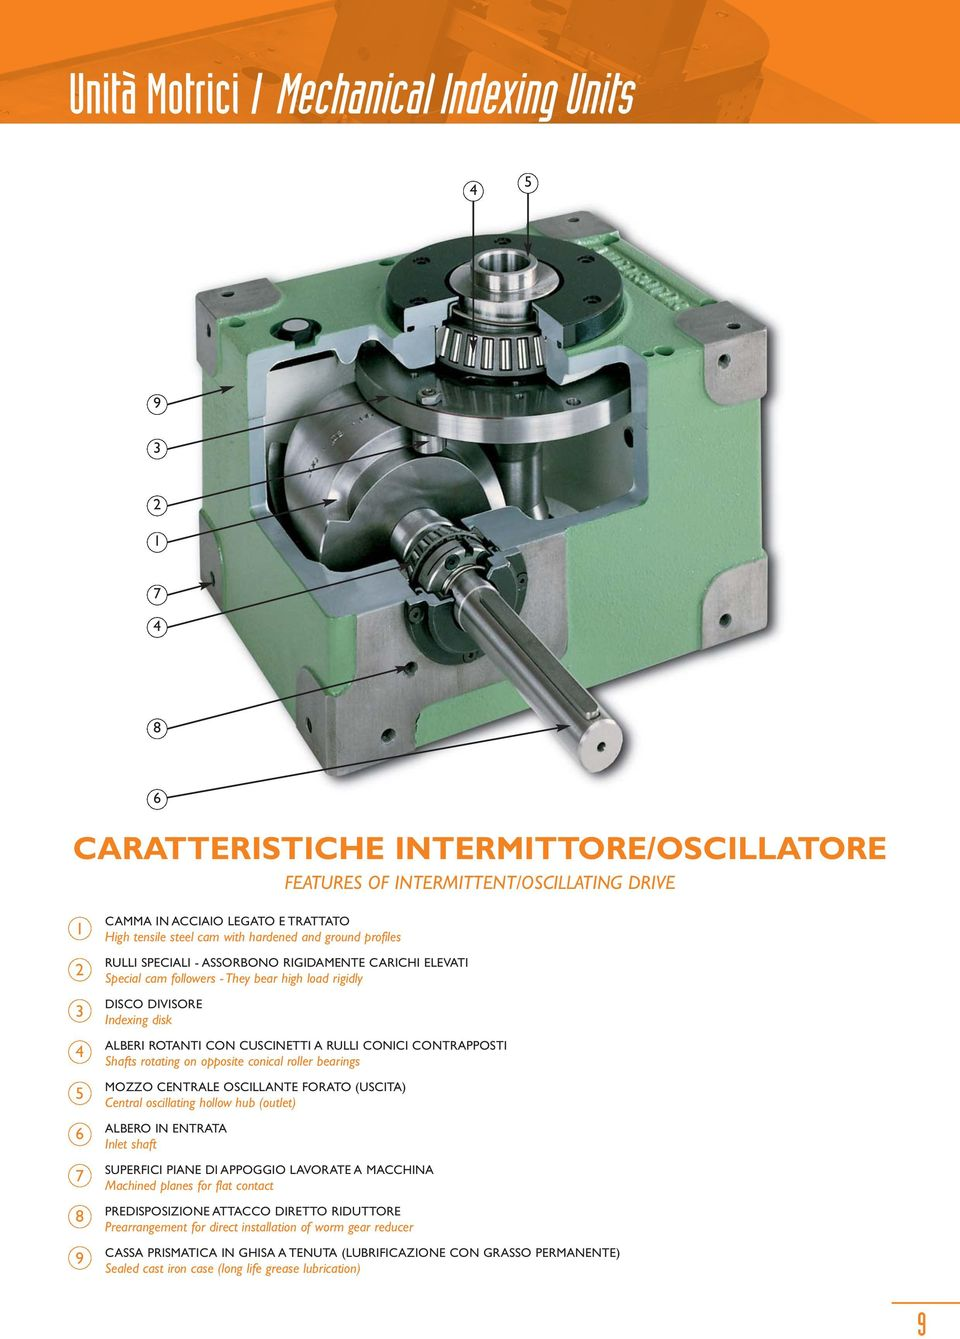 ROTANTI CON CUSCINETTI A RULLI CONICI CONTRAPPOSTI Shafts rotating on opposite conical roller bearings MOZZO CENTRALE OSCILLANTE FORATO (USCITA) Central oscillating hollow hub (outlet) ALBERO IN